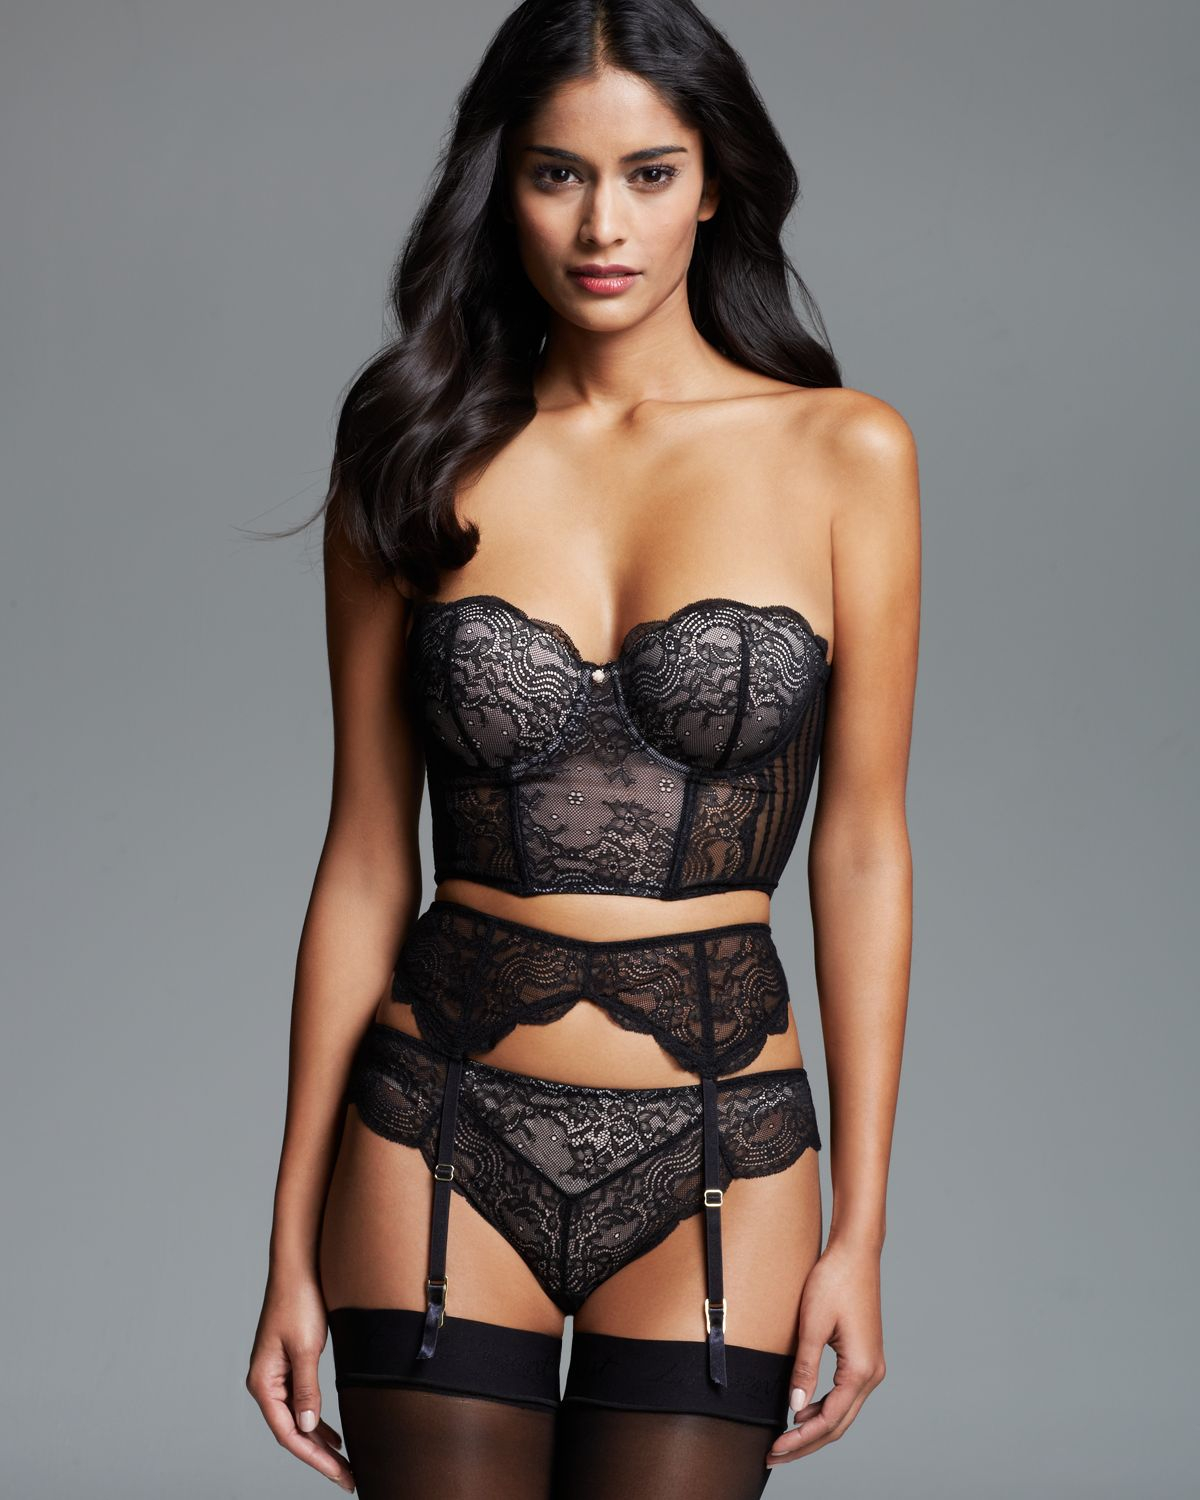 Blush Lingerie Strapless Cropped Corset In Black  Lyst-2656